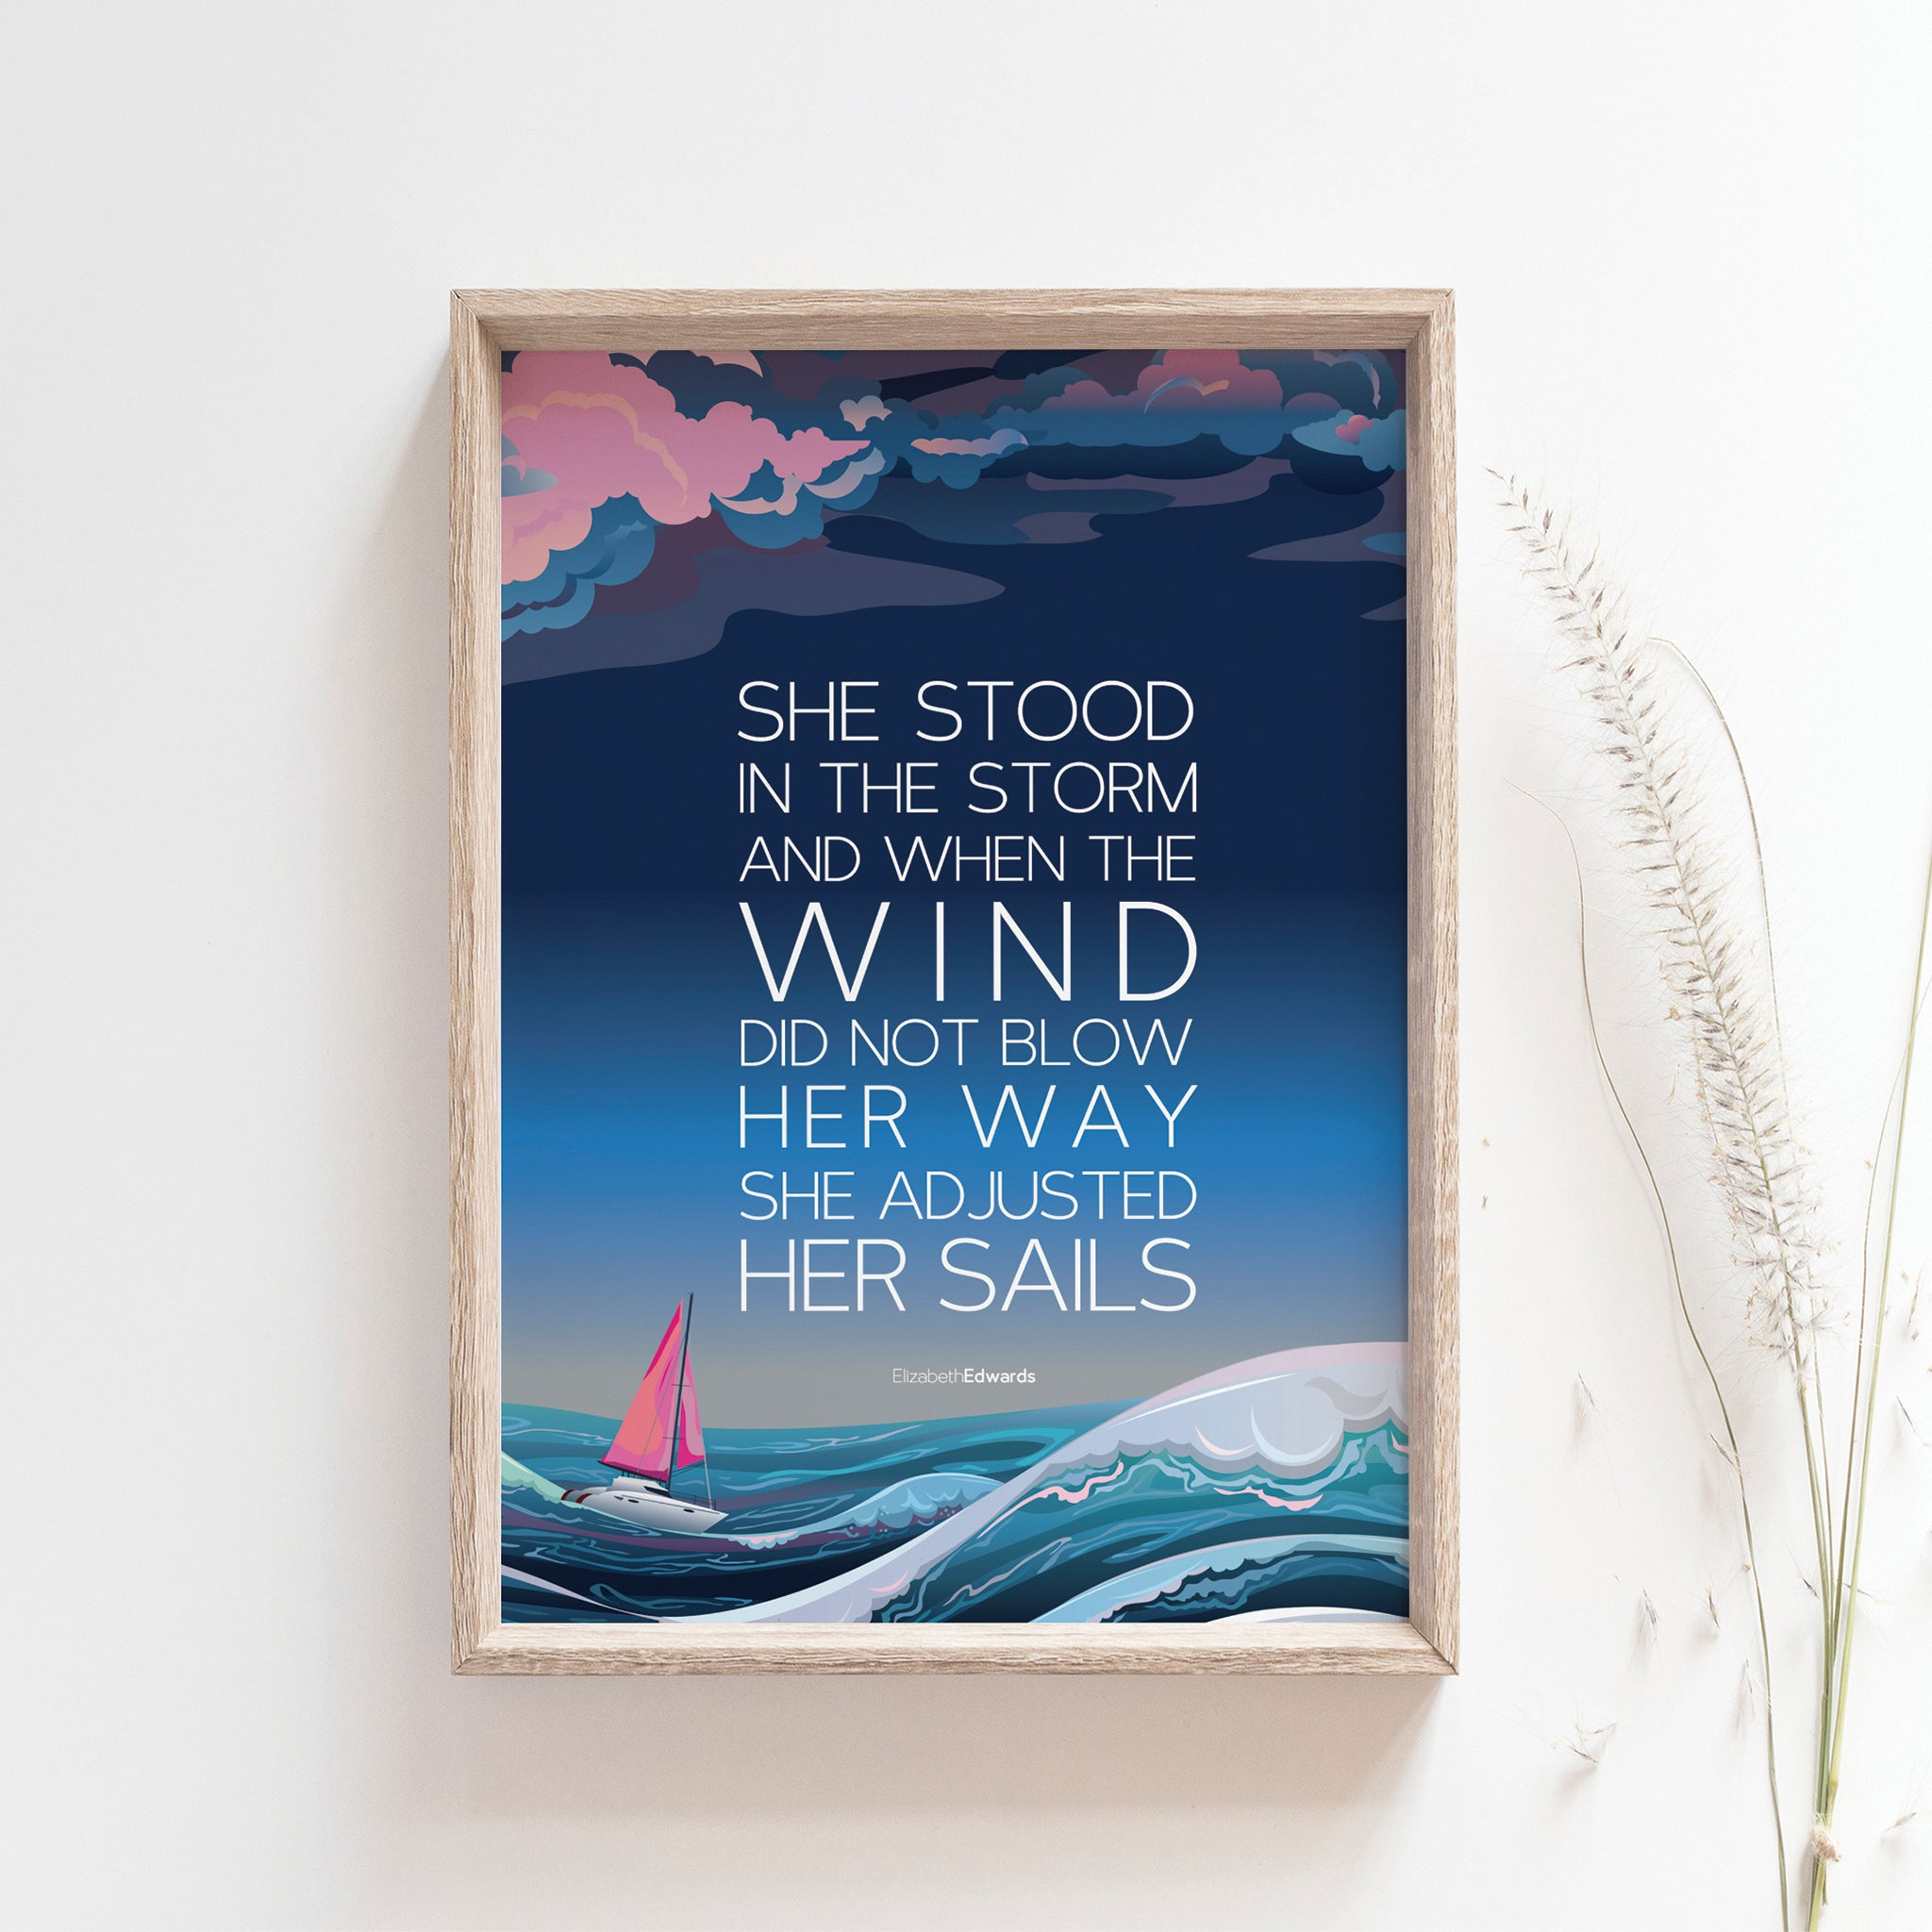 She stood in the storm and when the wind did not blow her away, she adjusted her sails, Motivational quote poster